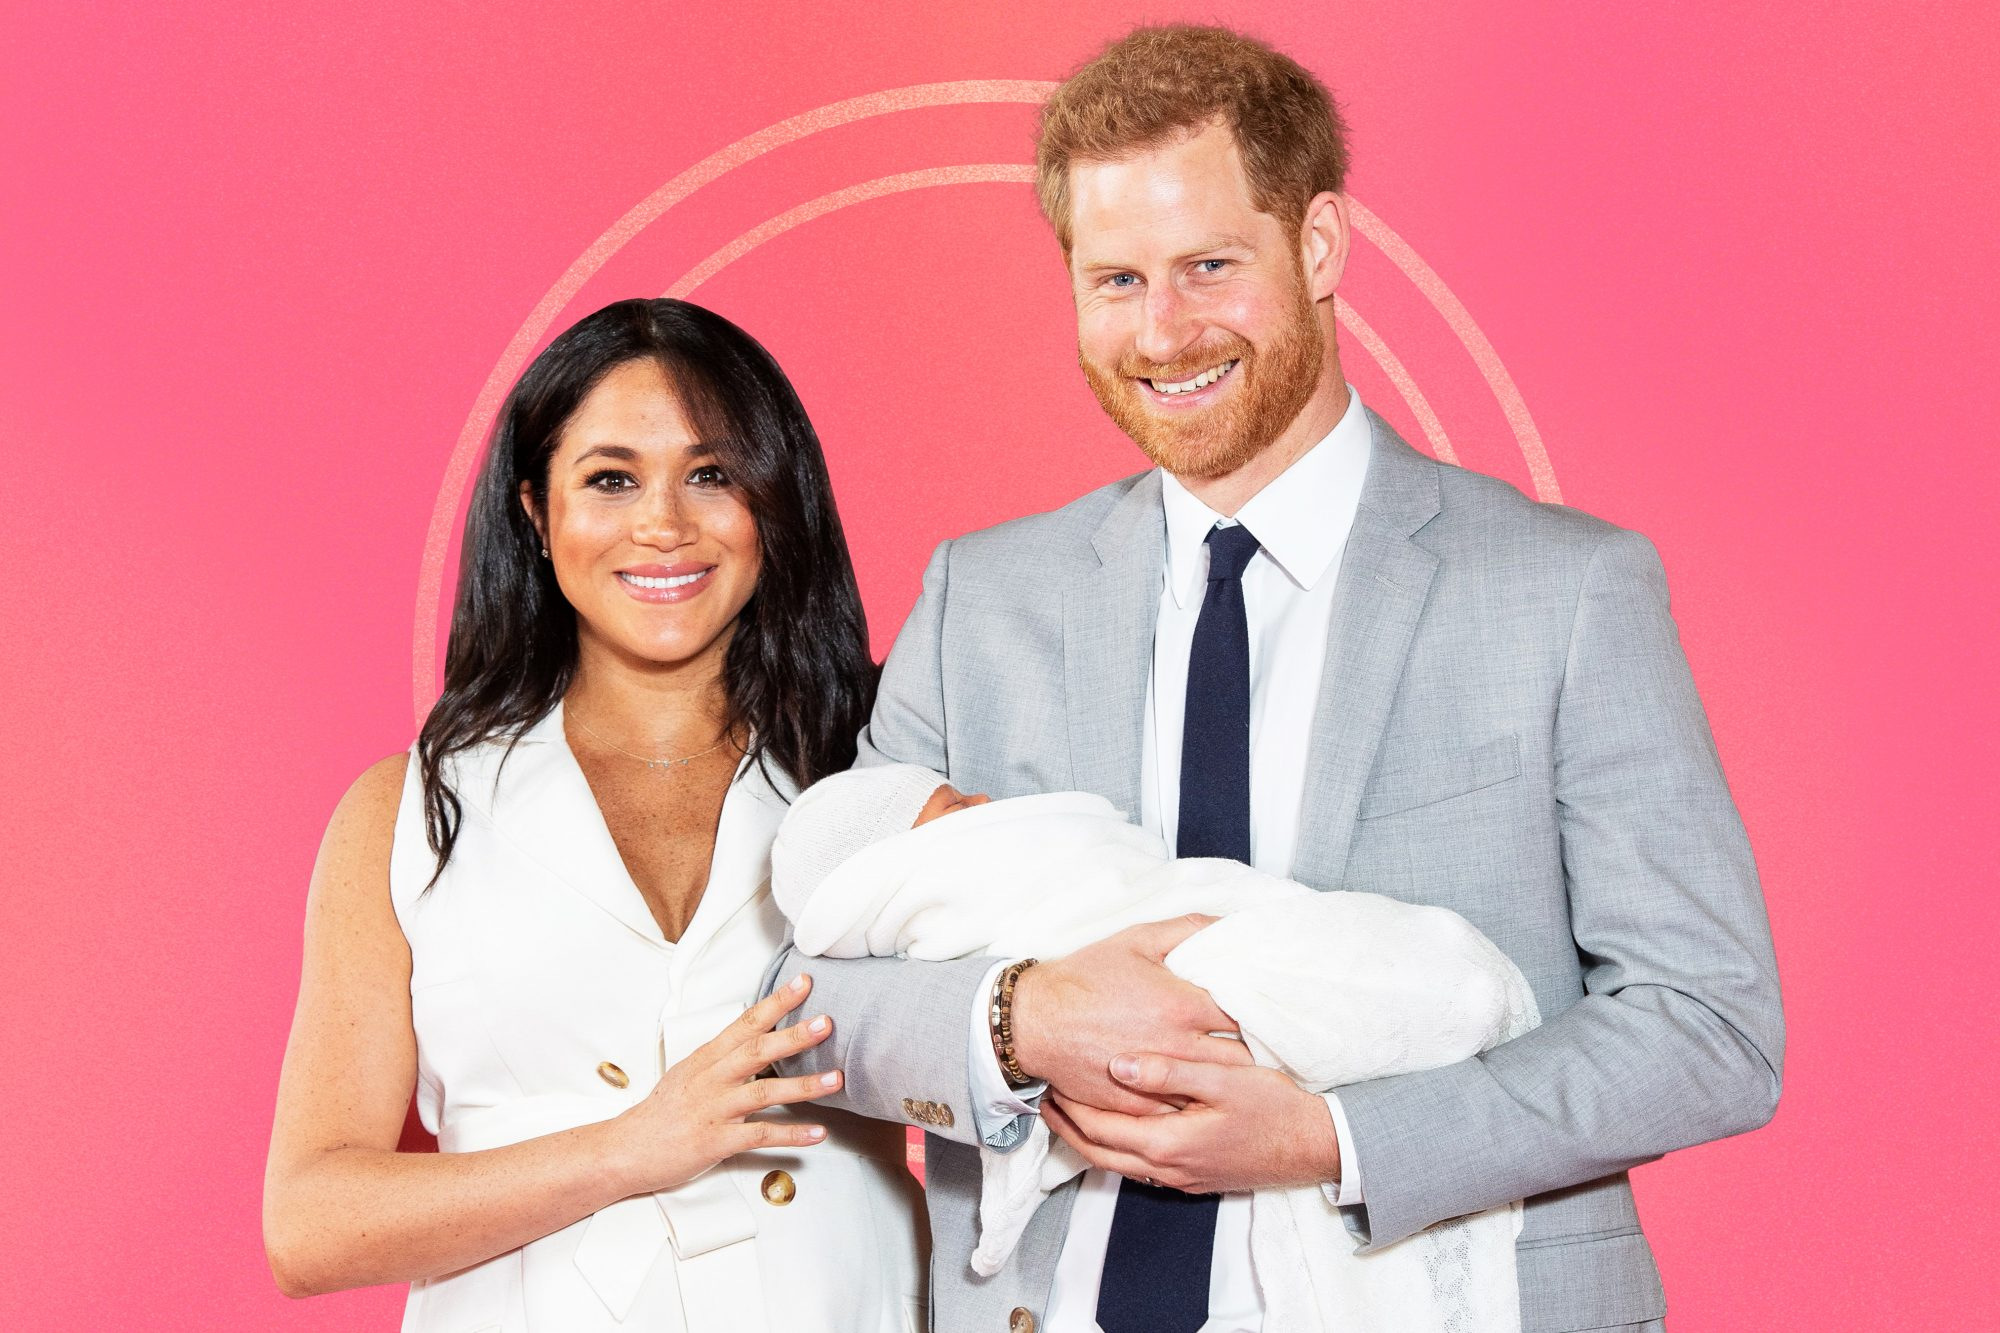 Meghan-Markle-Urged-Congress-to-Pass-Paid-Parental-Leave-Policies-With-Powerful-Open-Letter-GettyImages-1142161983